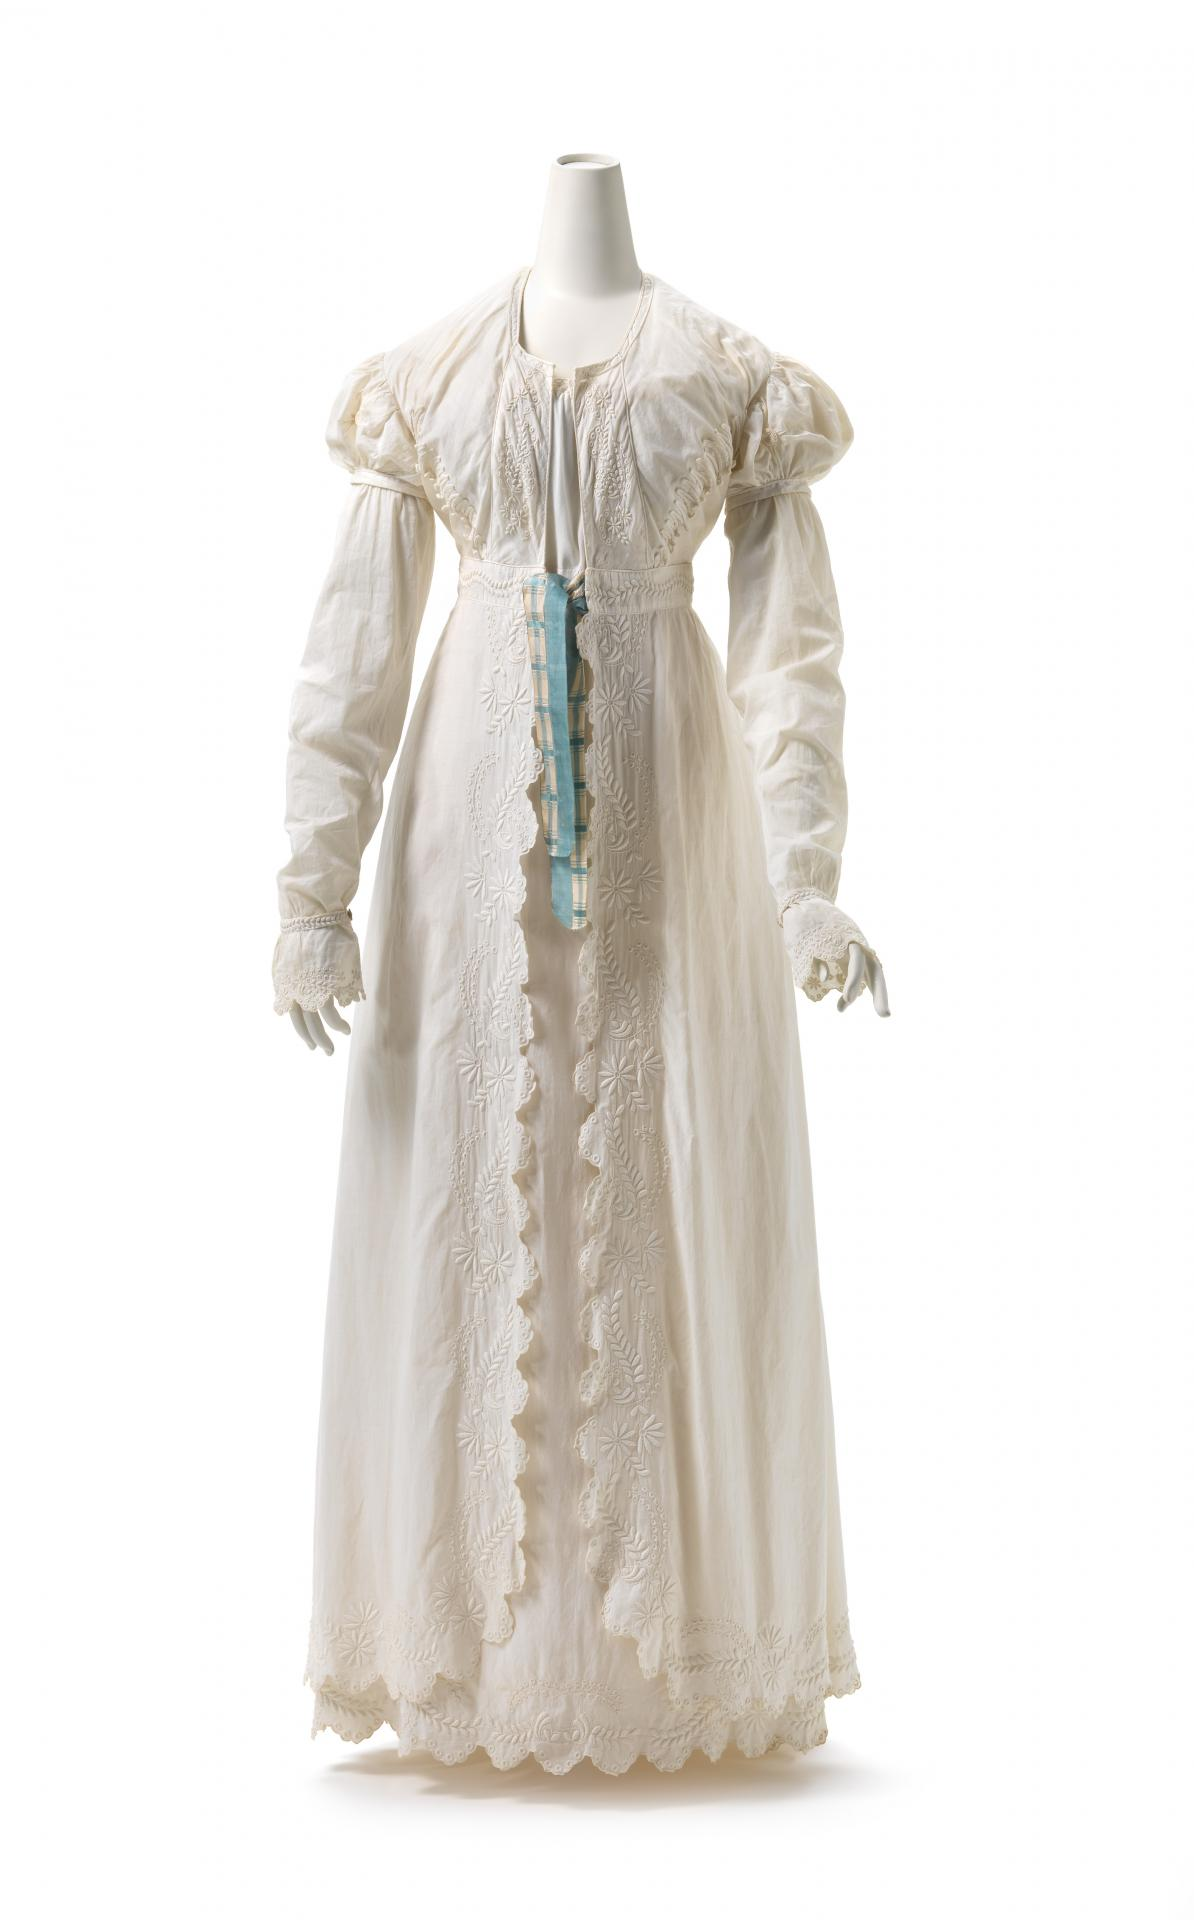 Pelisse and dress